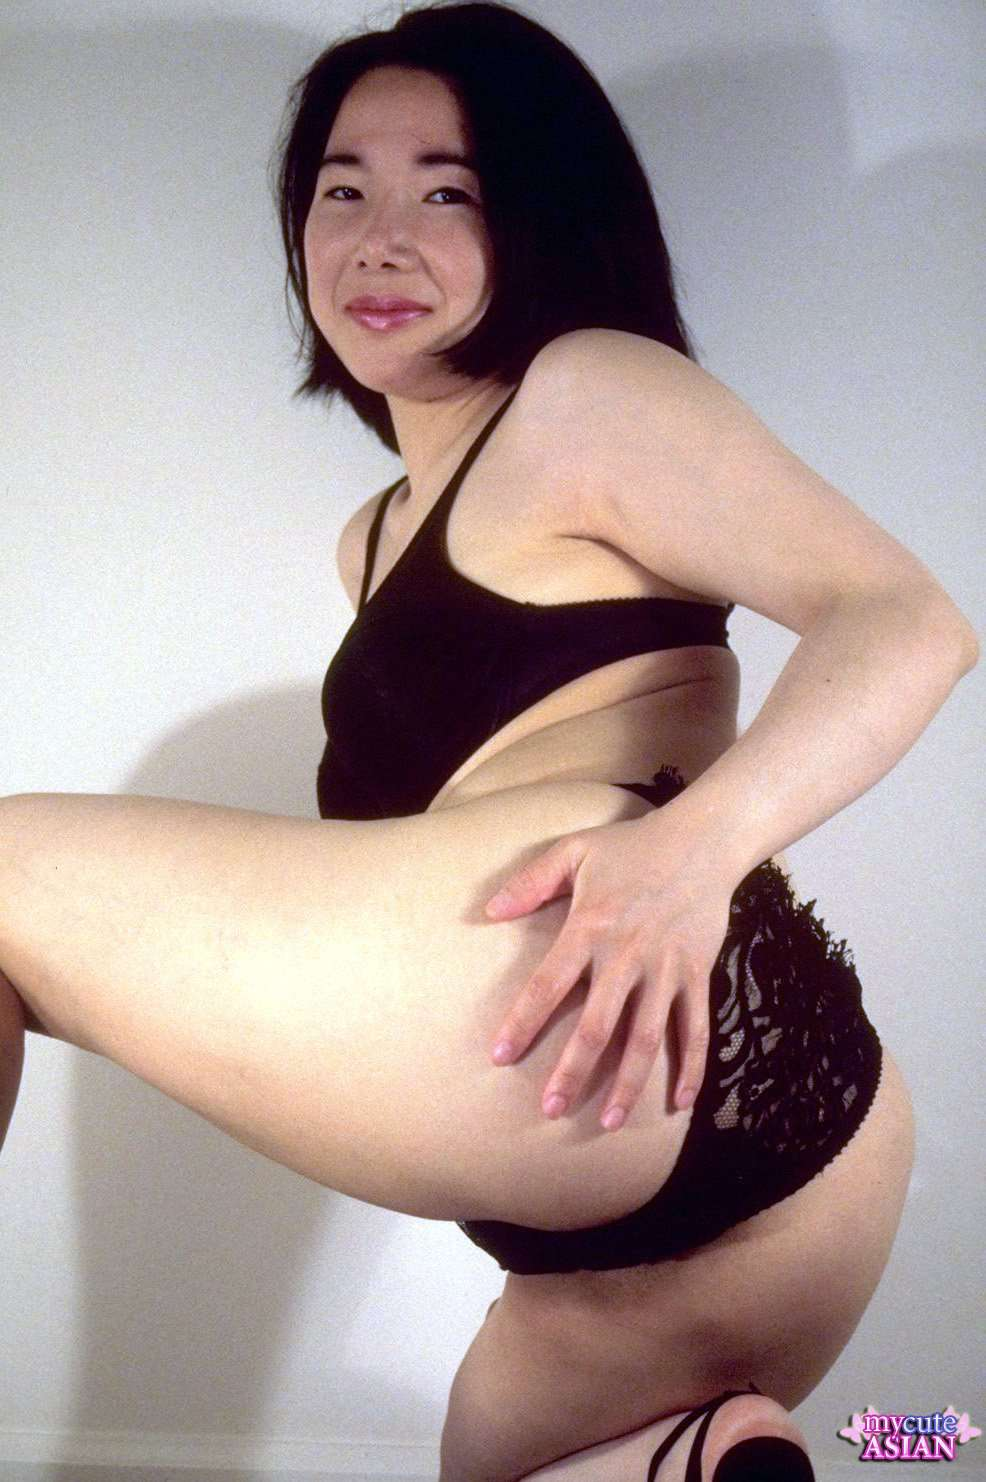 shy looking asian girl with juicy tits gets completely nude and